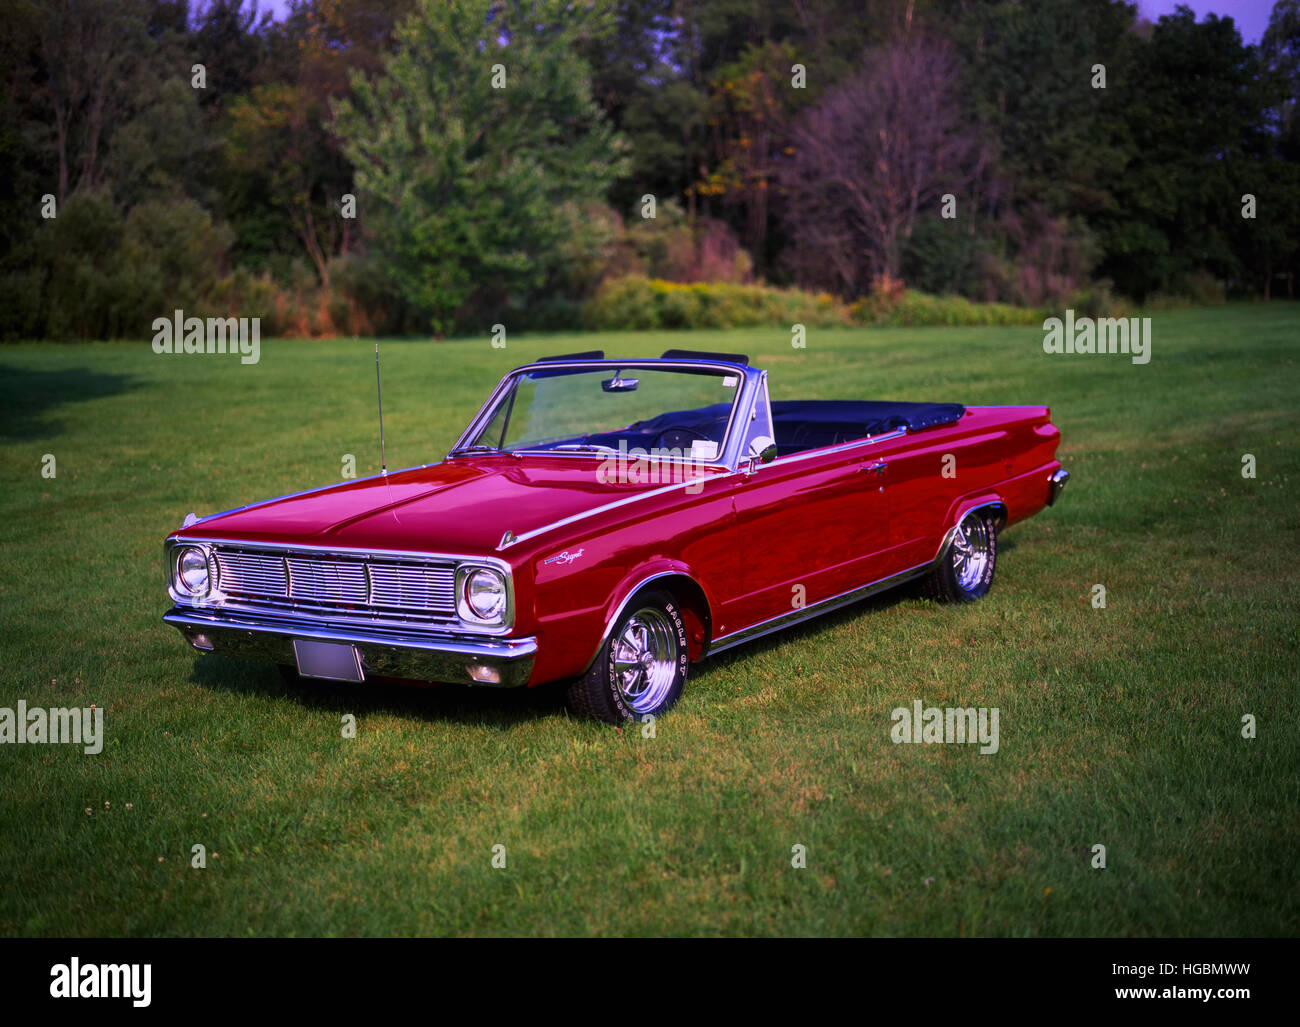 Plymouth Valiant Stock Photos Images Alamy 1960 For Sale 1966 Signet